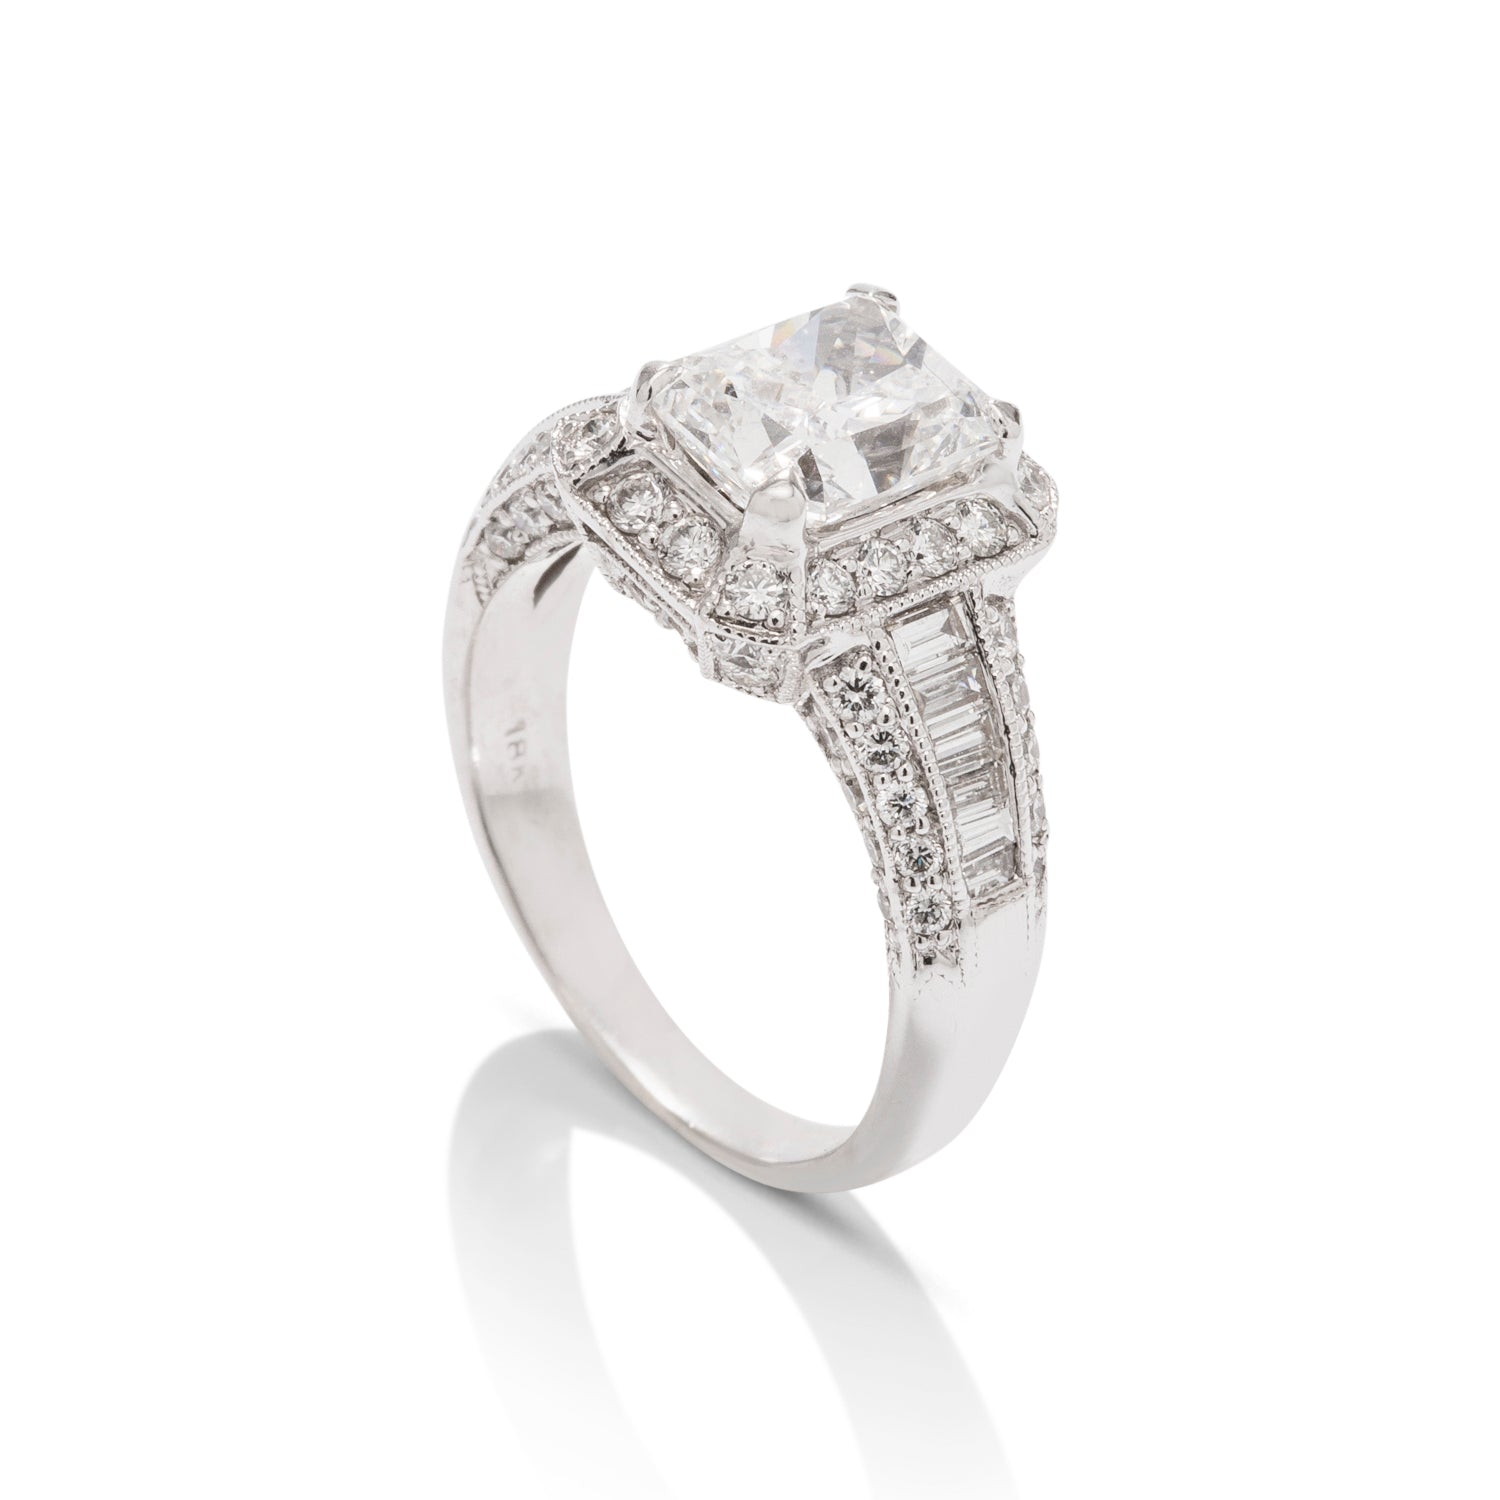 2.02 Carat White Gold Diamond Engagement Ring - Charles Koll Jewellers